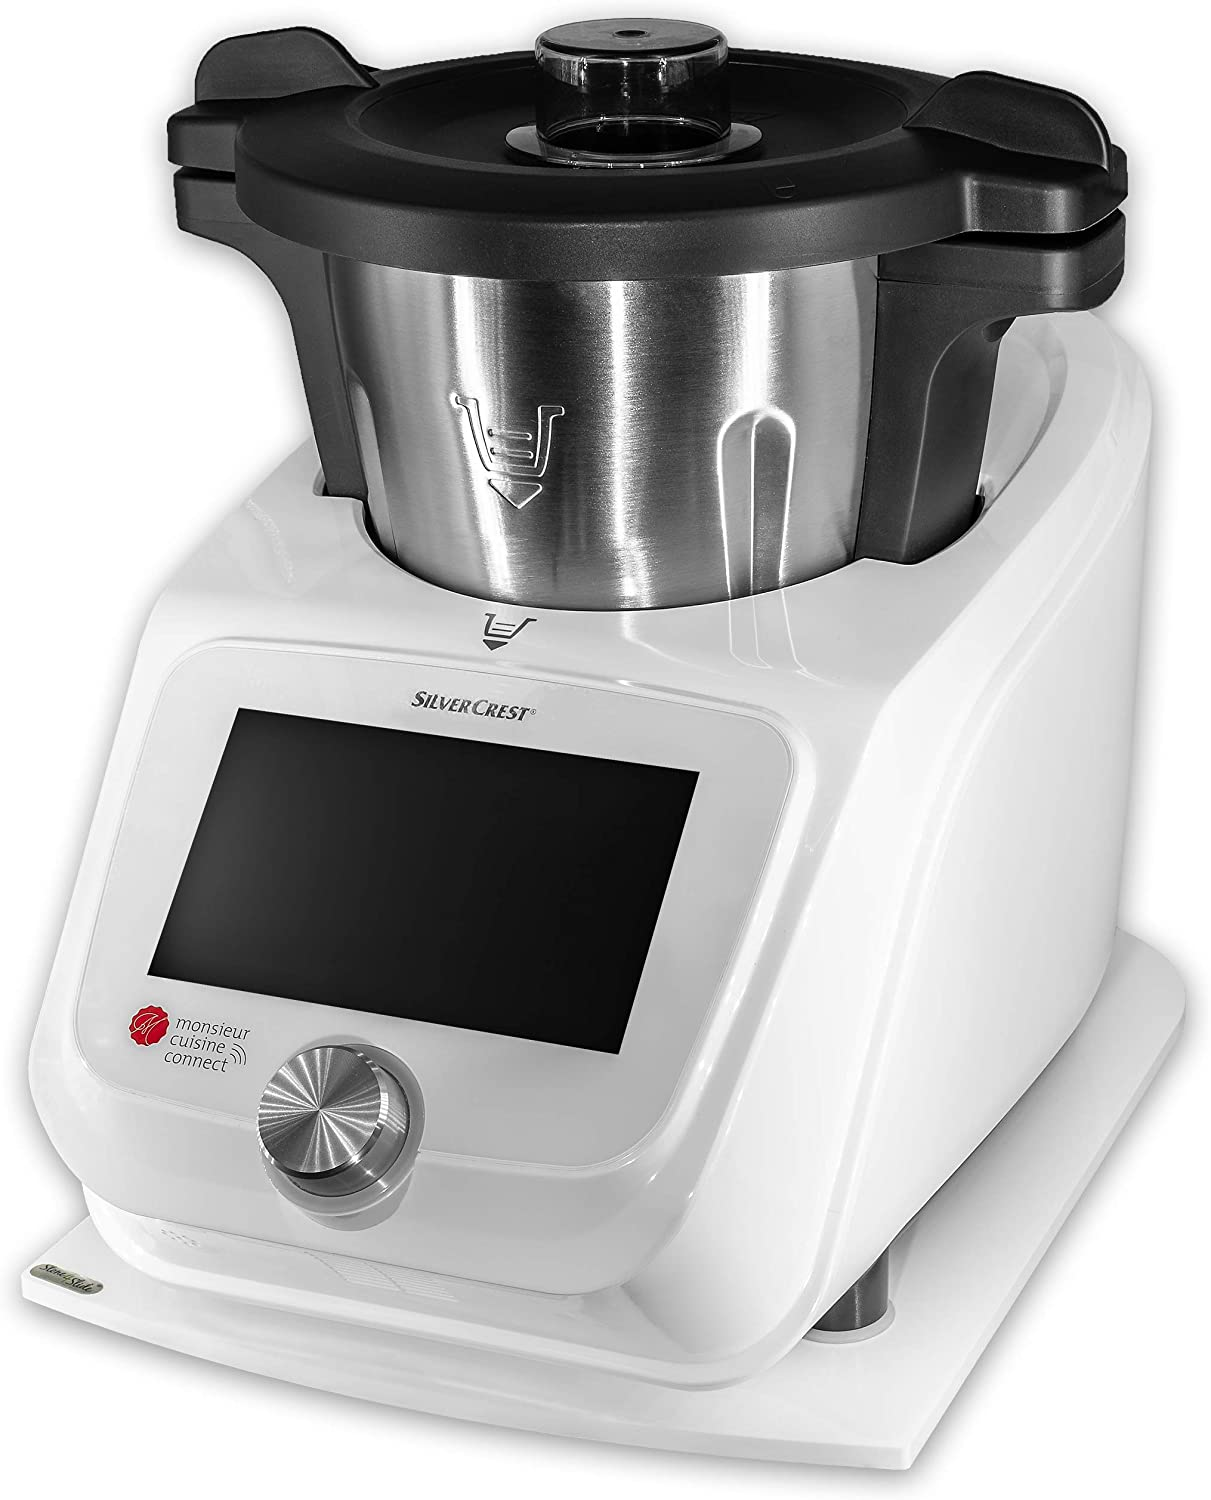 Compra coolina - Base deslizante para Monsieur Cuisine Connect (MCC) de acrílico, color blanco en Amazon.es